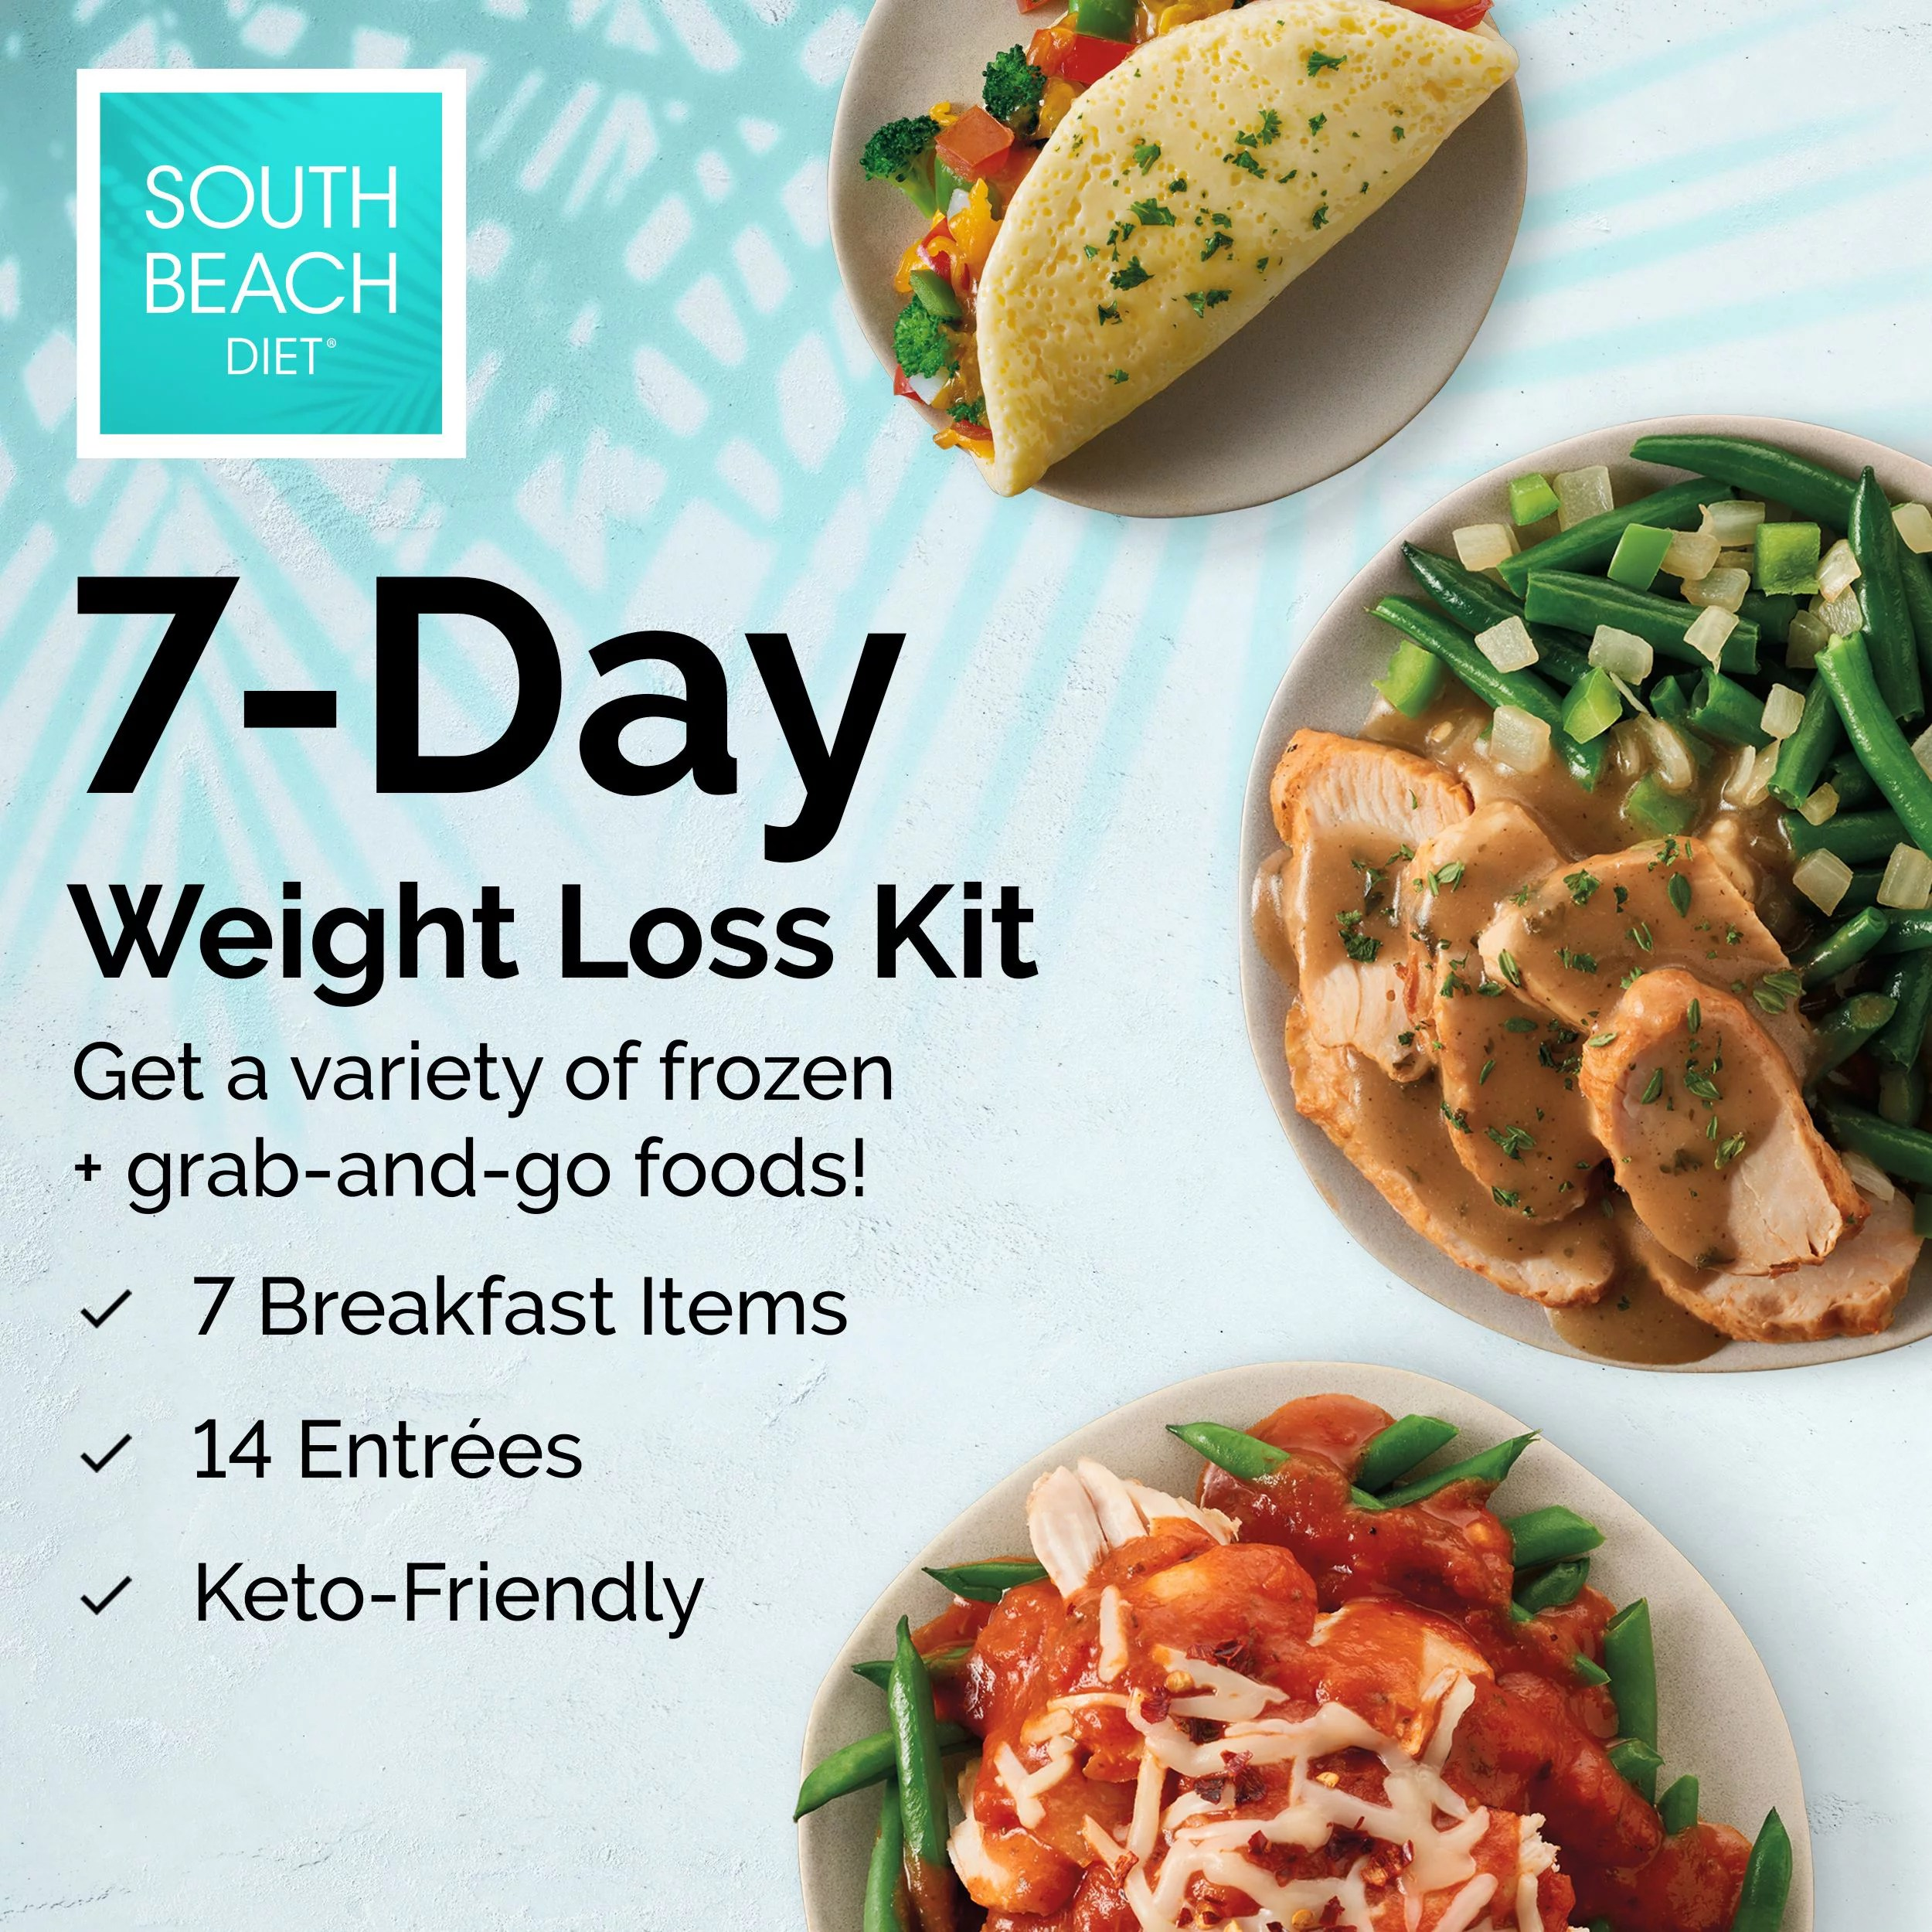 south beach diet phase 1 frozen ready to go 7 day weight loss kit 21 meals walmart com